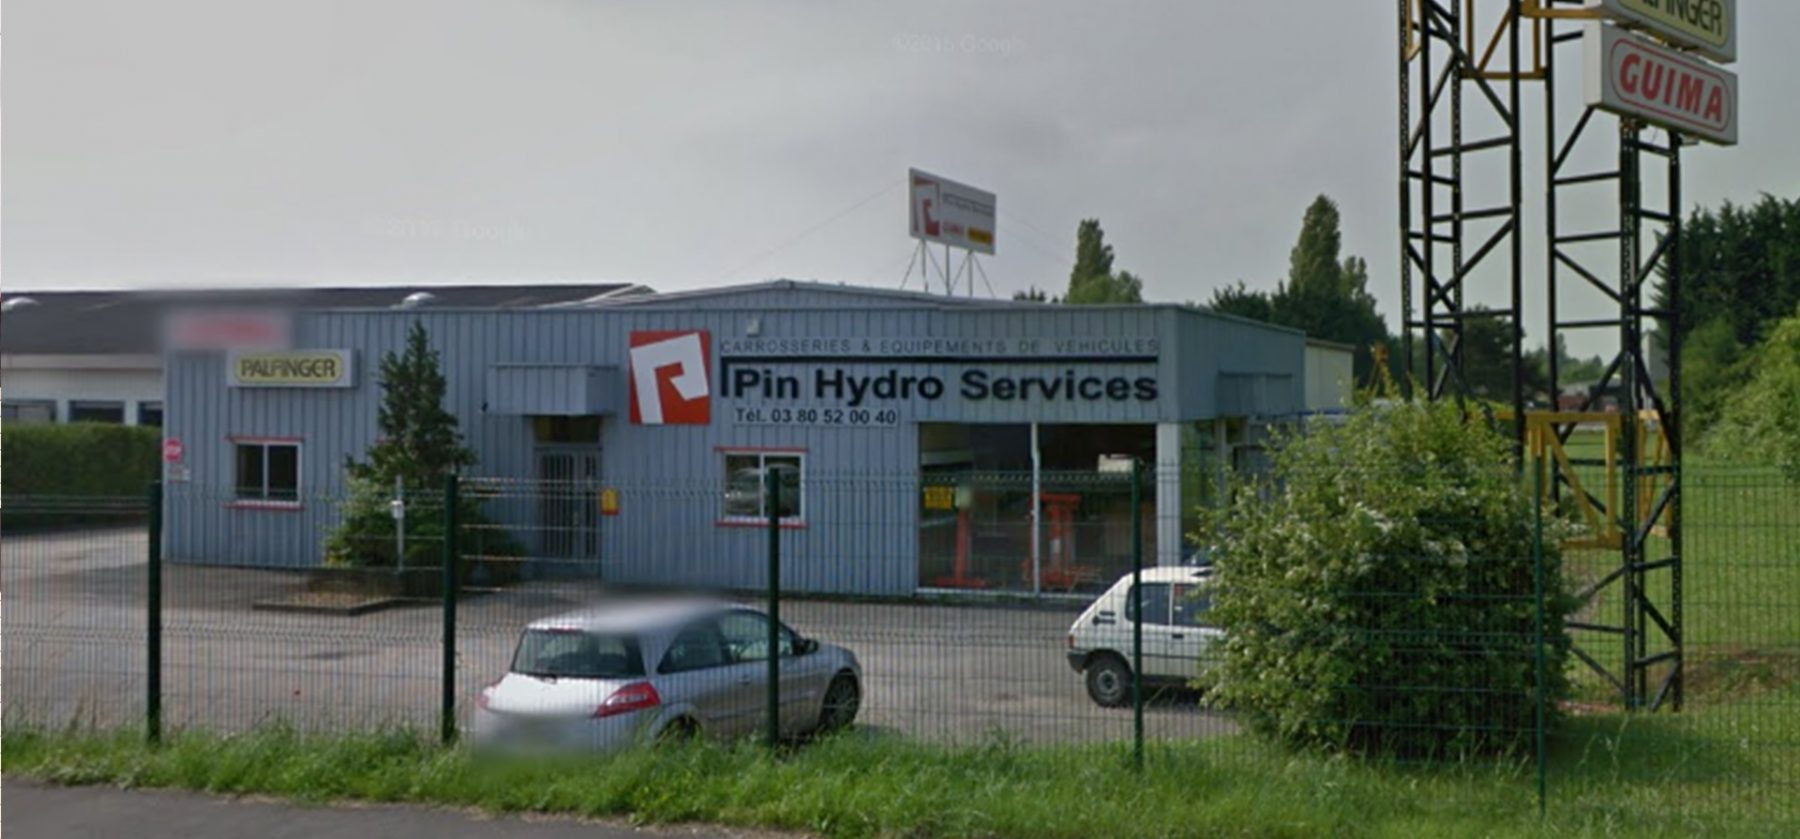 Pin hydro services 2